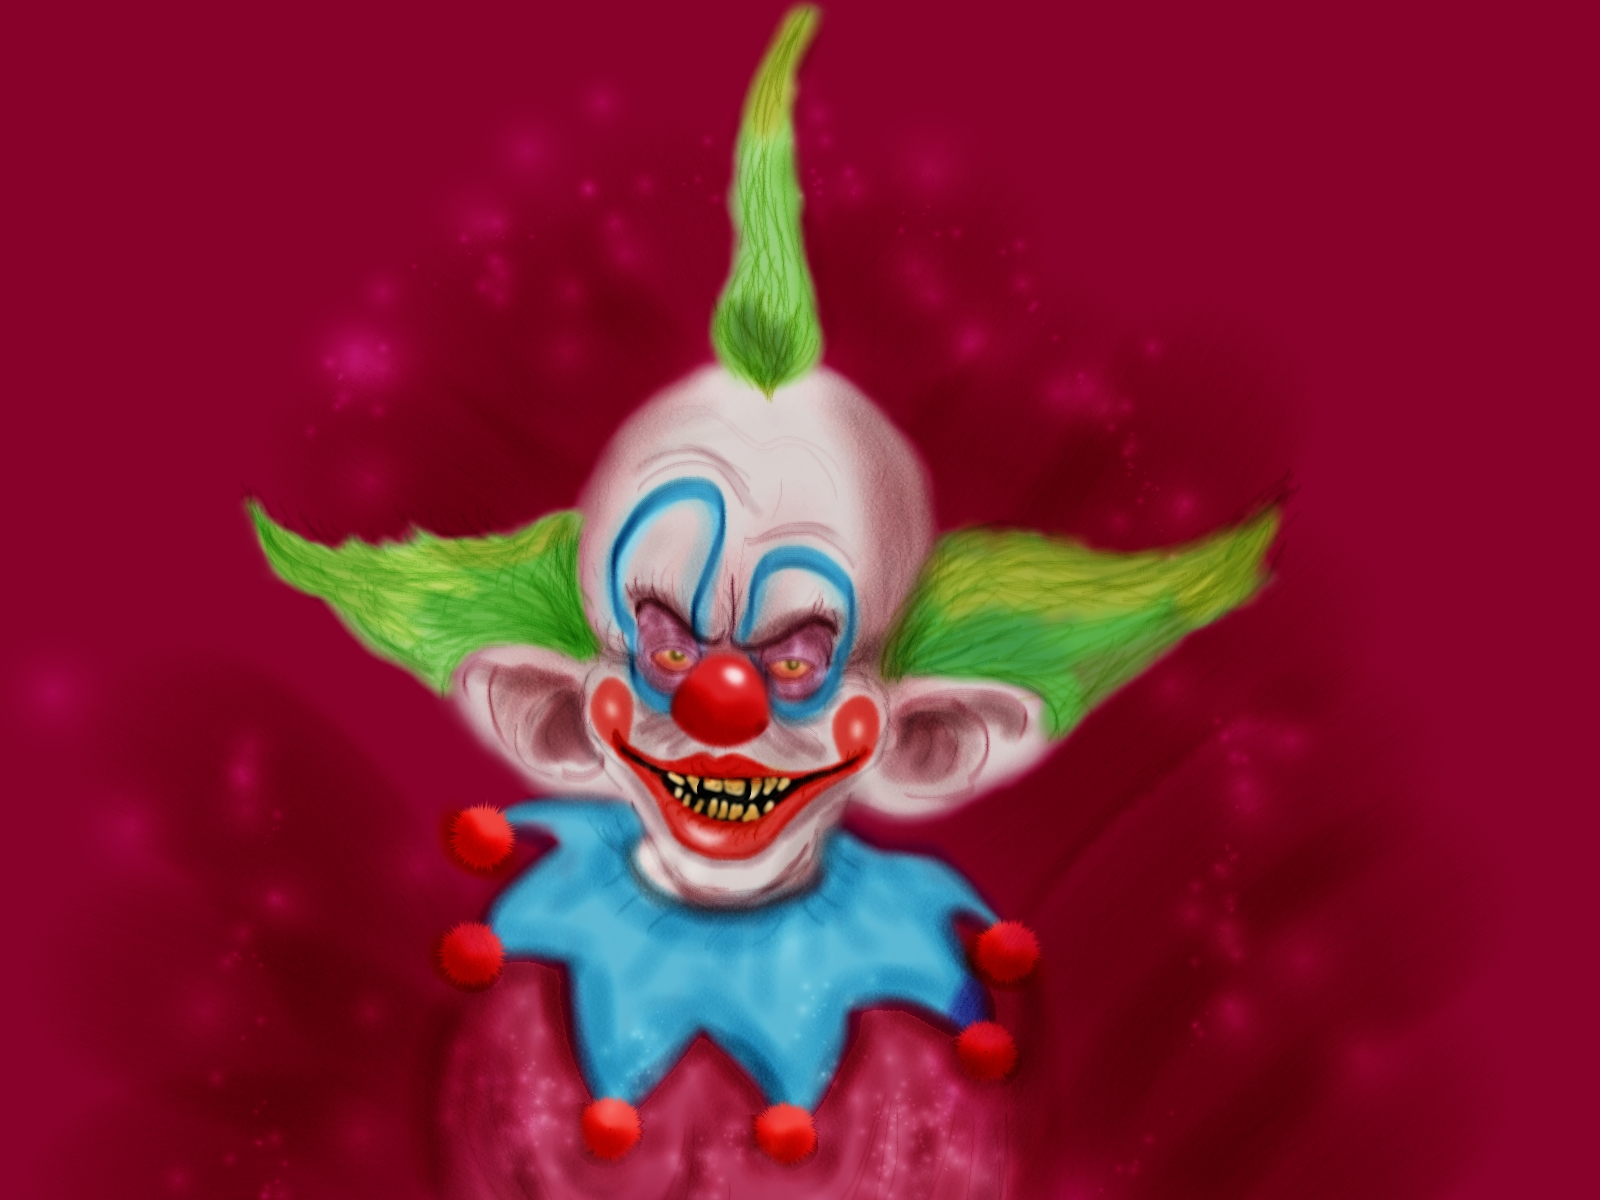 Cartoon and horror fan art friday andreas silva makinita for Killer klowns 2